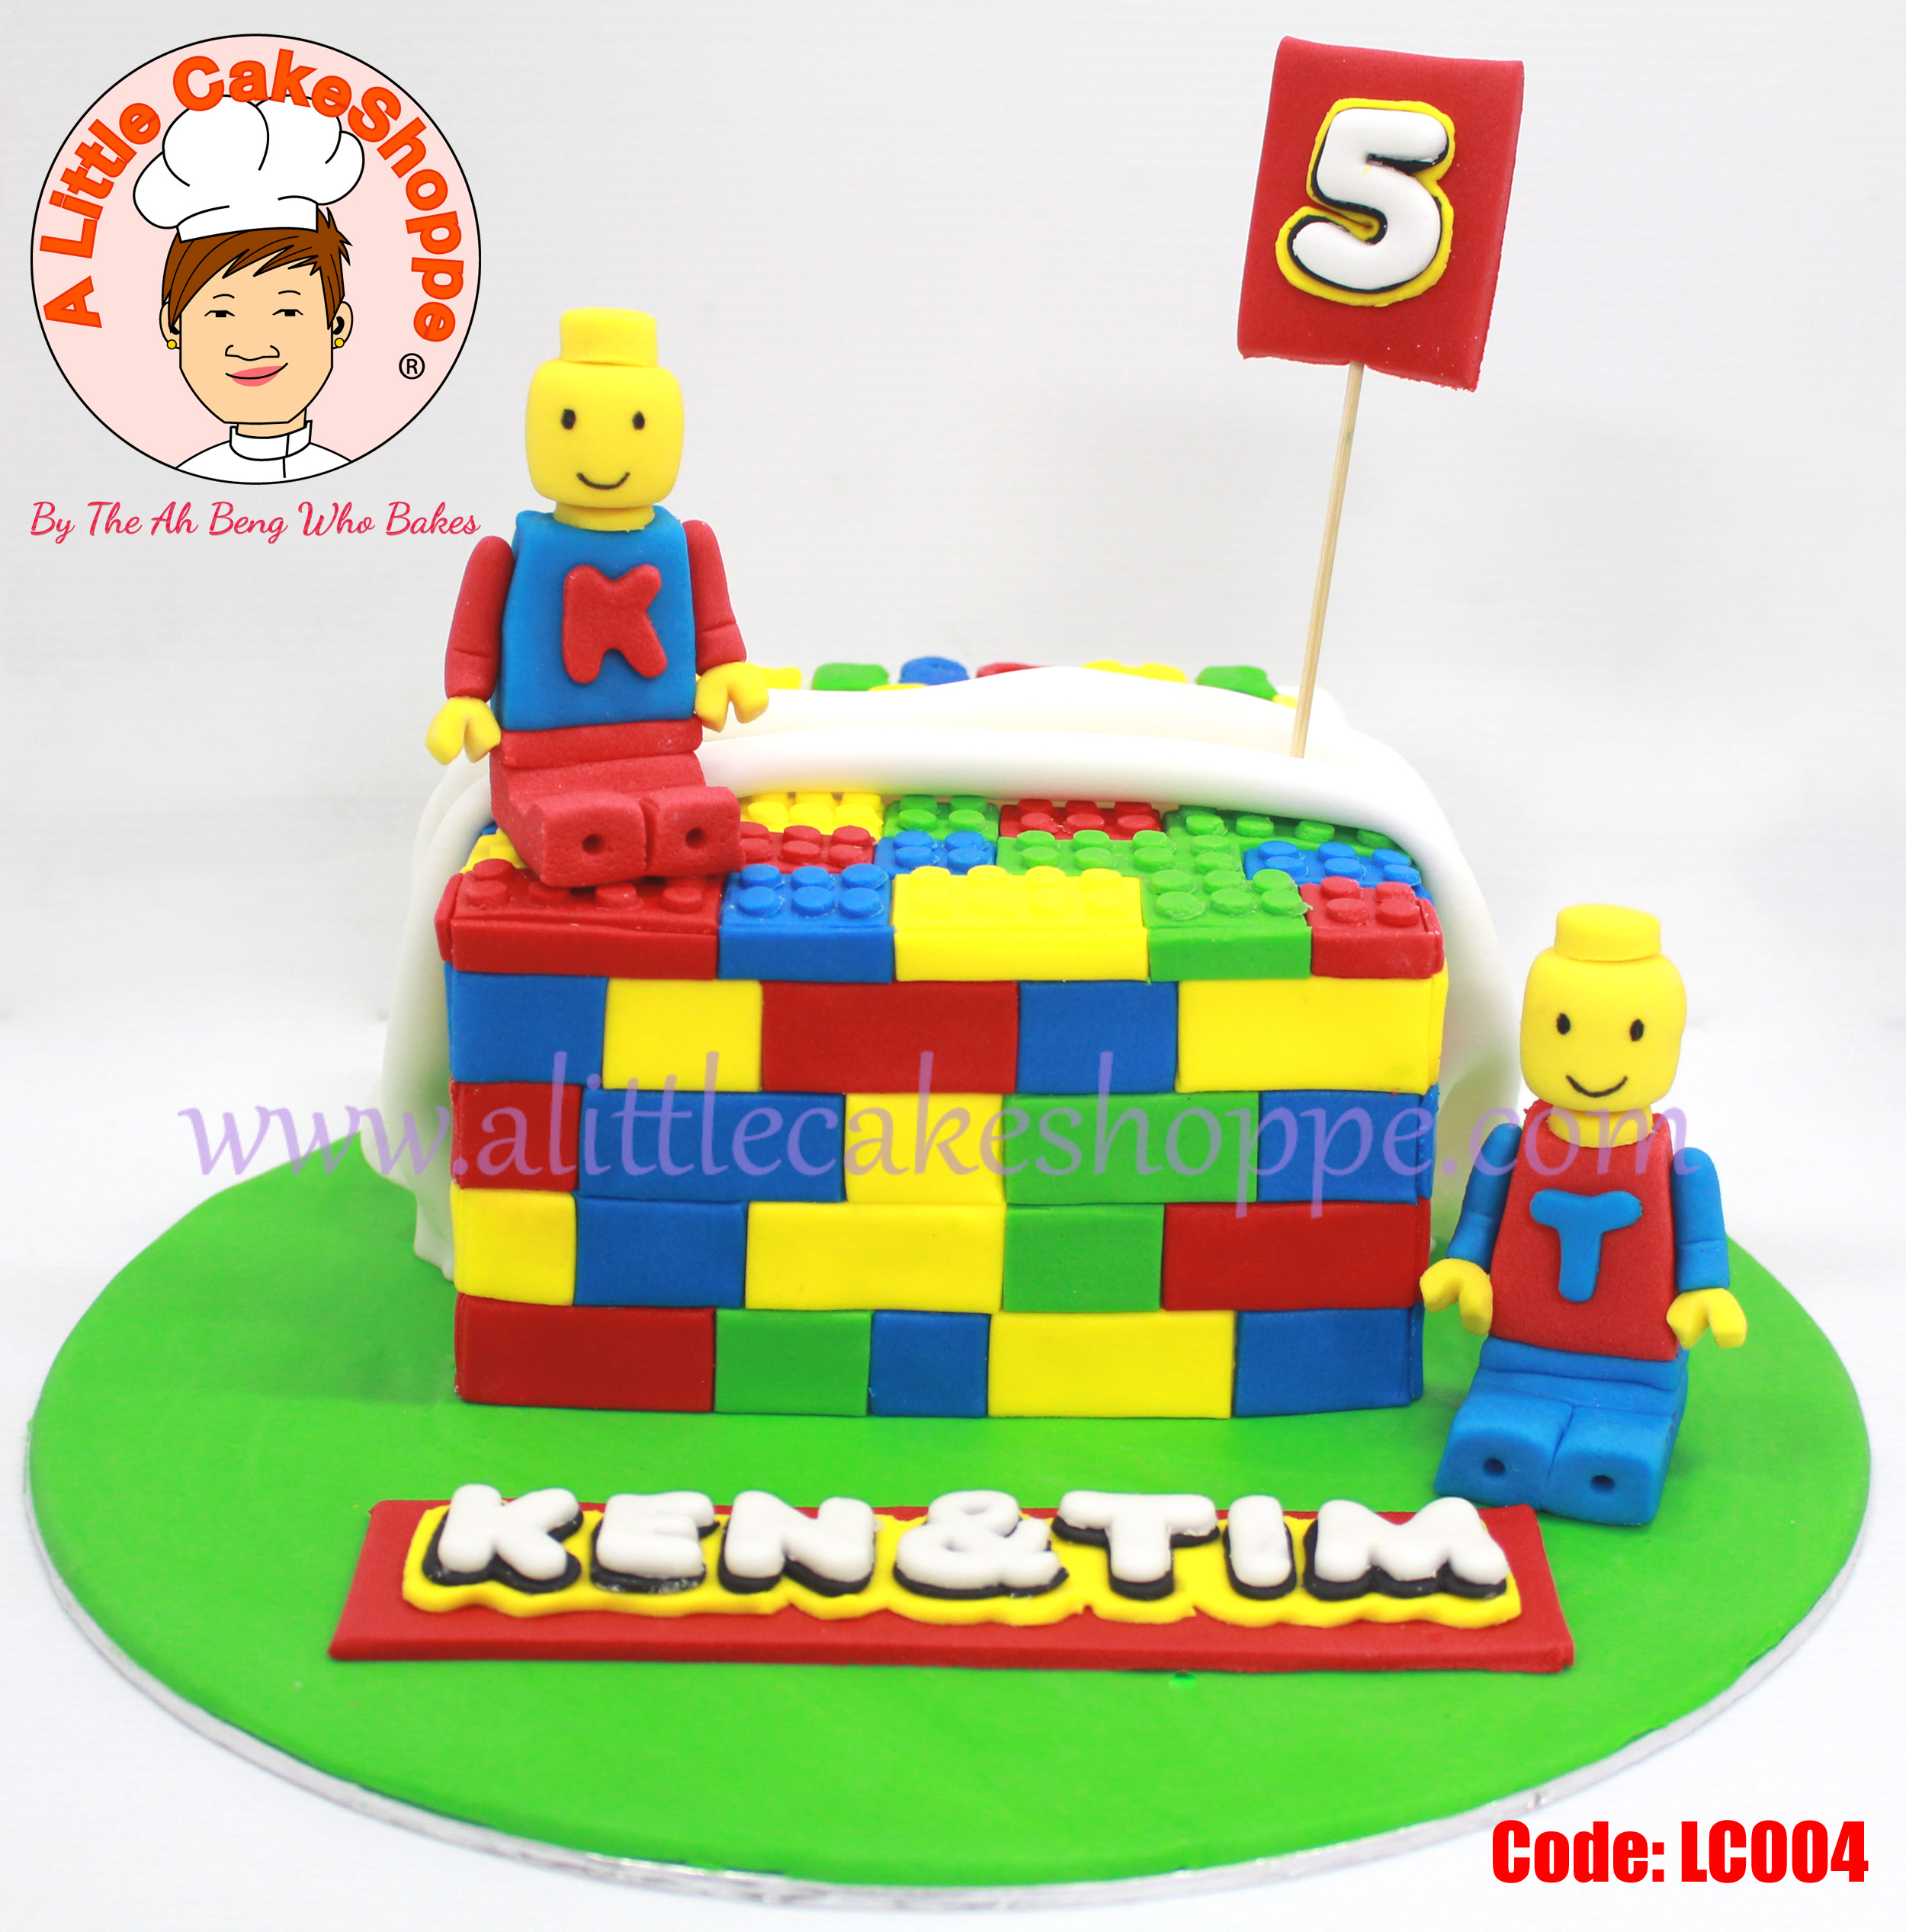 Best Customised Cake Shop Singapore custom cake 2D 3D birthday cake cupcakes desserts wedding corporate events anniversary 1st birthday 21st birthday fondant fresh cream buttercream cakes alittlecakeshoppe a little cake shoppe compliments review singapore bakers SG cake shop cakeshop ah beng who bakes lego